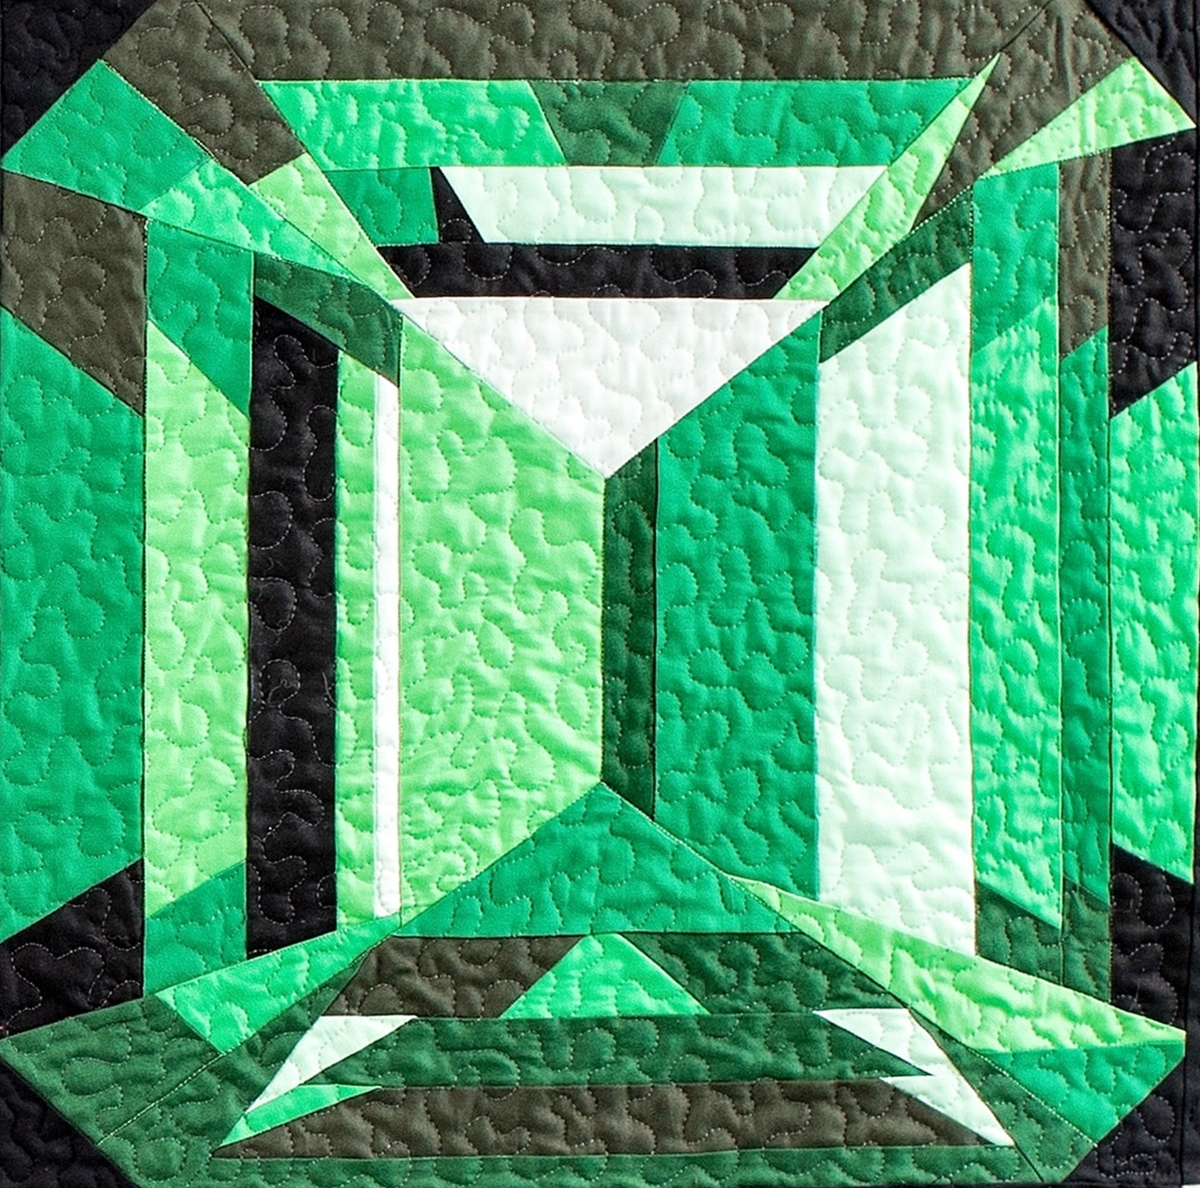 EMERALD_New quilted square.jpg